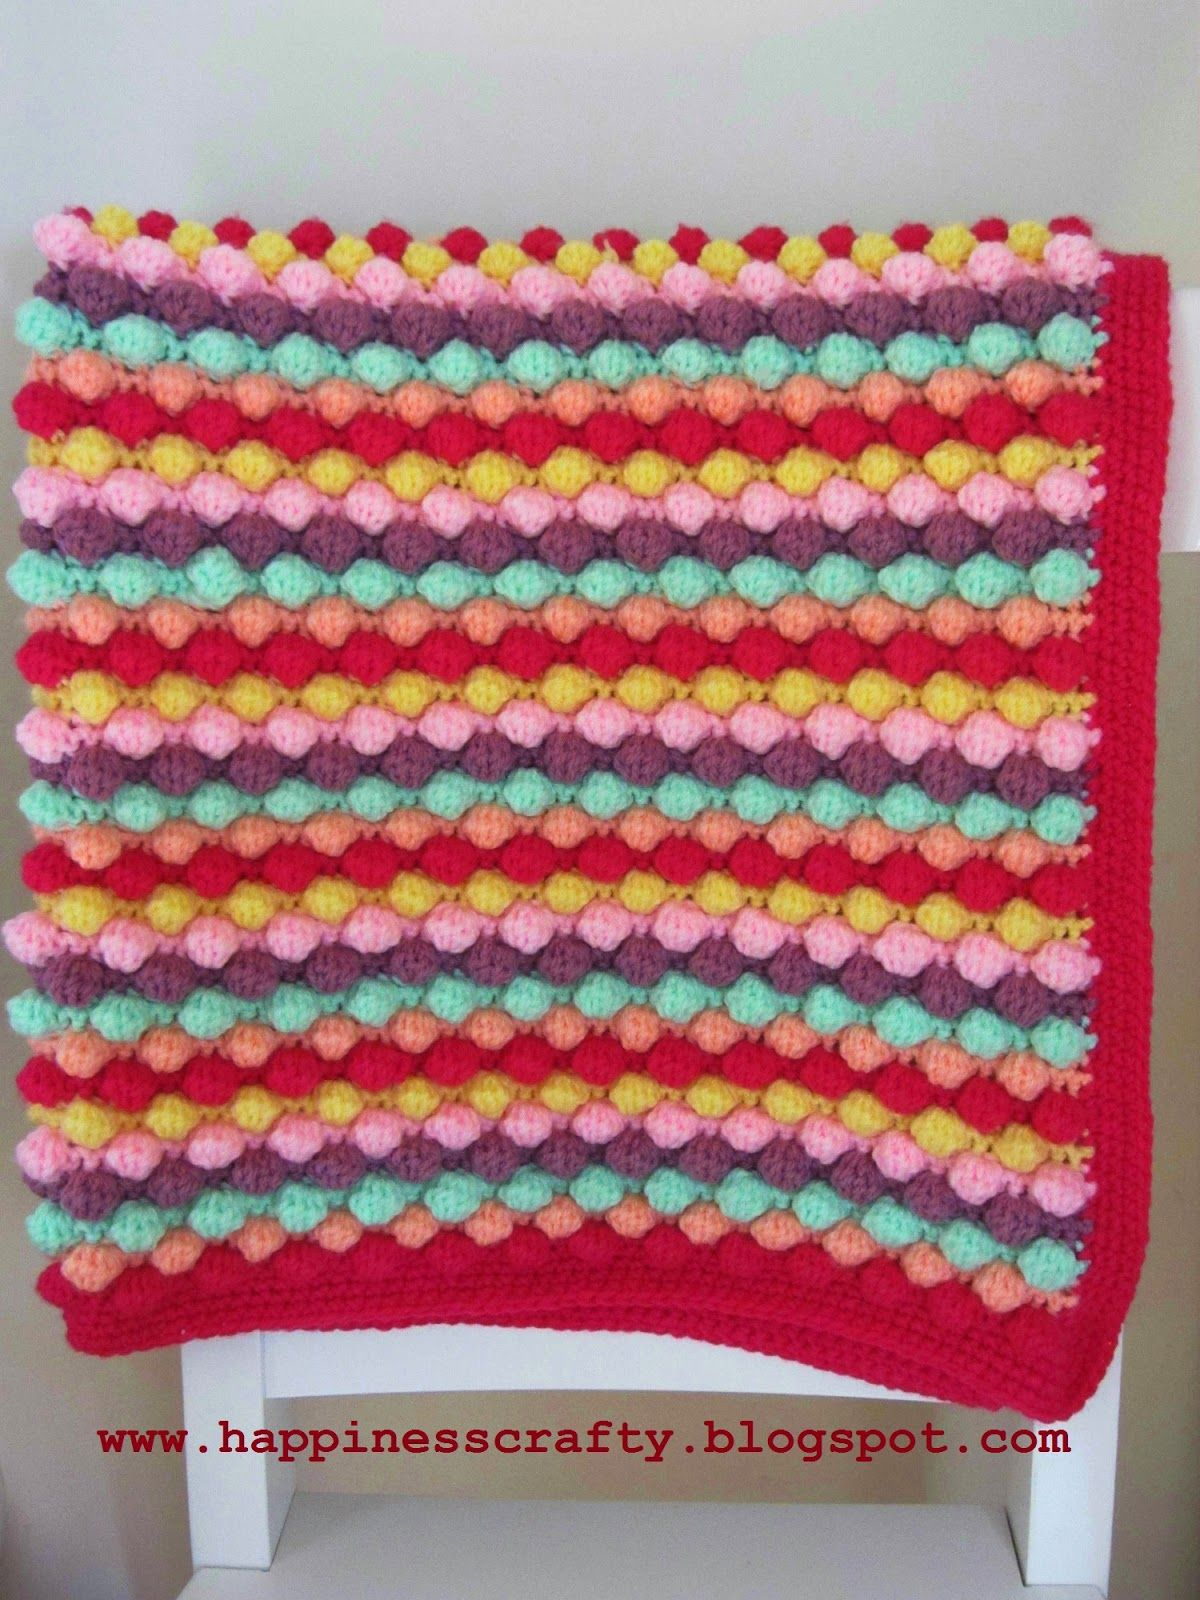 Crochet Baby Bobble Blanket ~ Free Pattern by Happiness Crafty ...